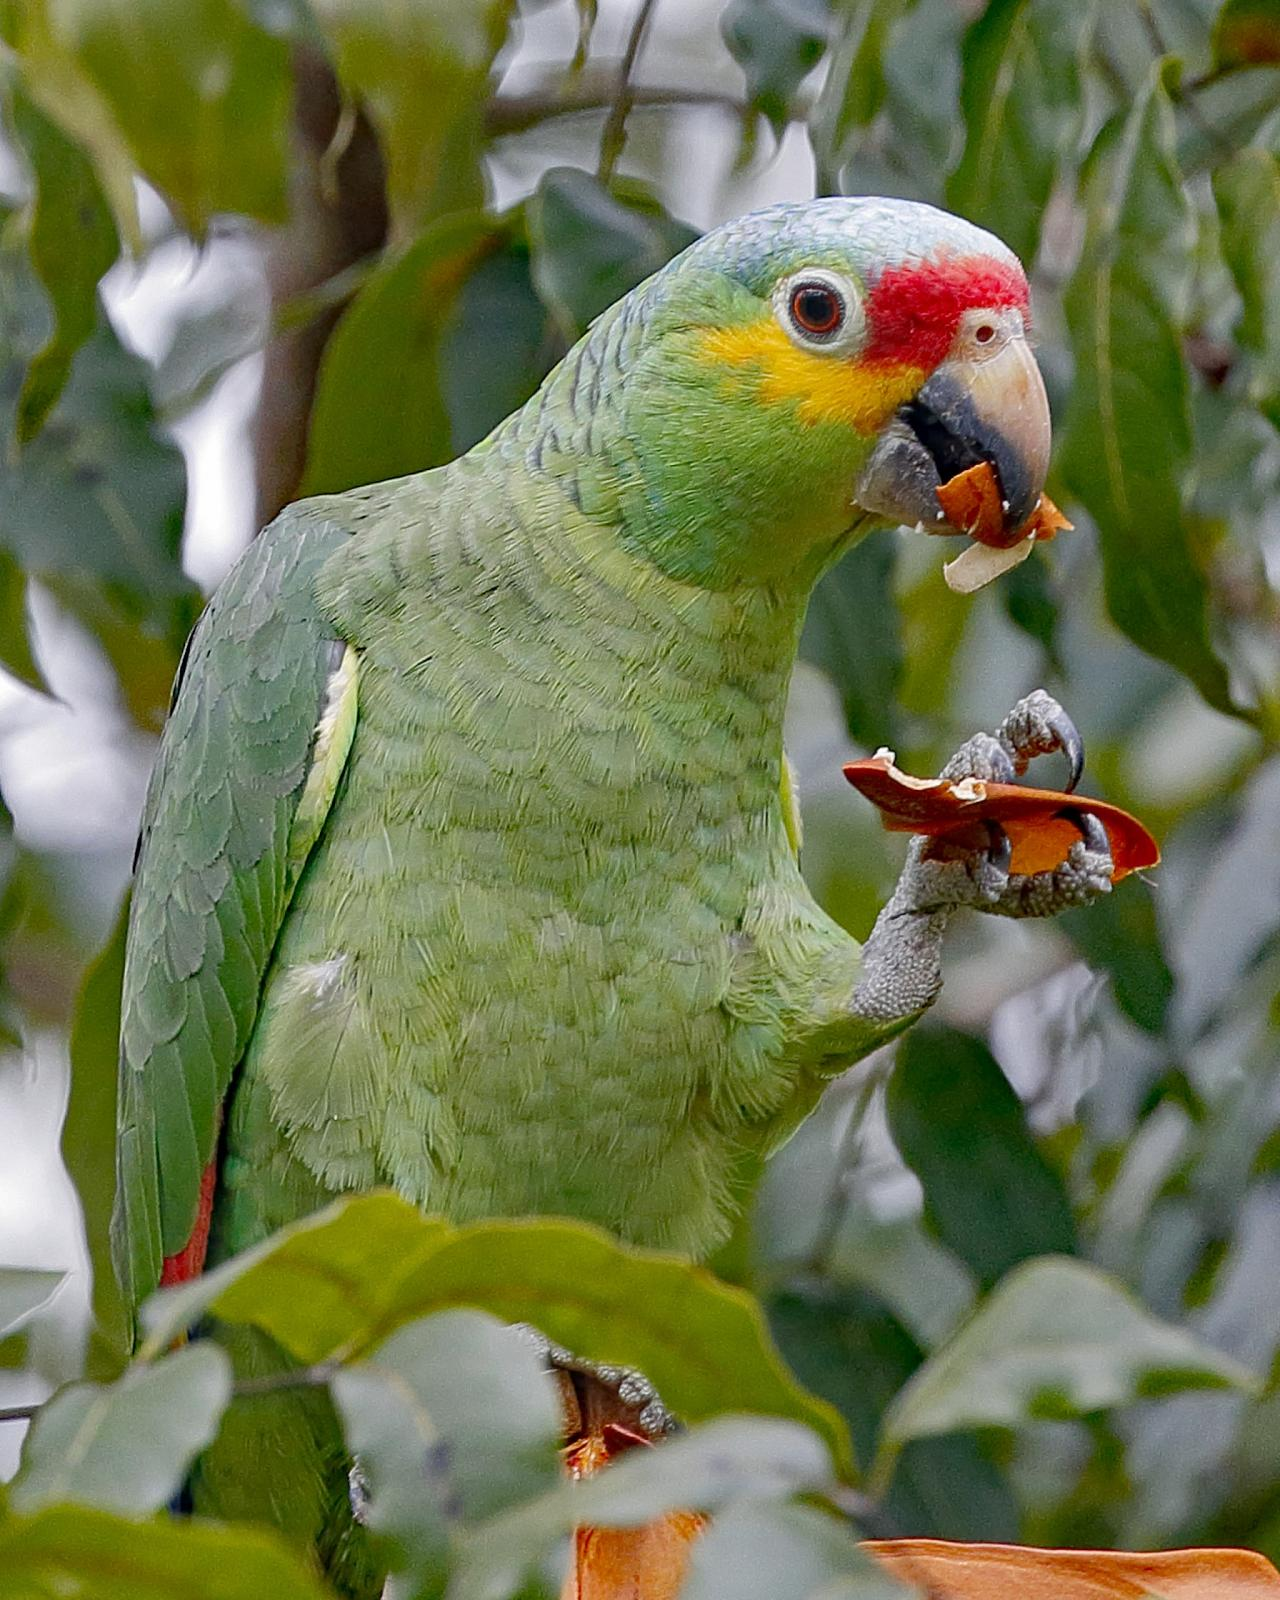 Red-lored Parrot, Belize, Belize Birding Tour, Belize Nature Tour, Winter Belize Tour, Naturalist Journeys